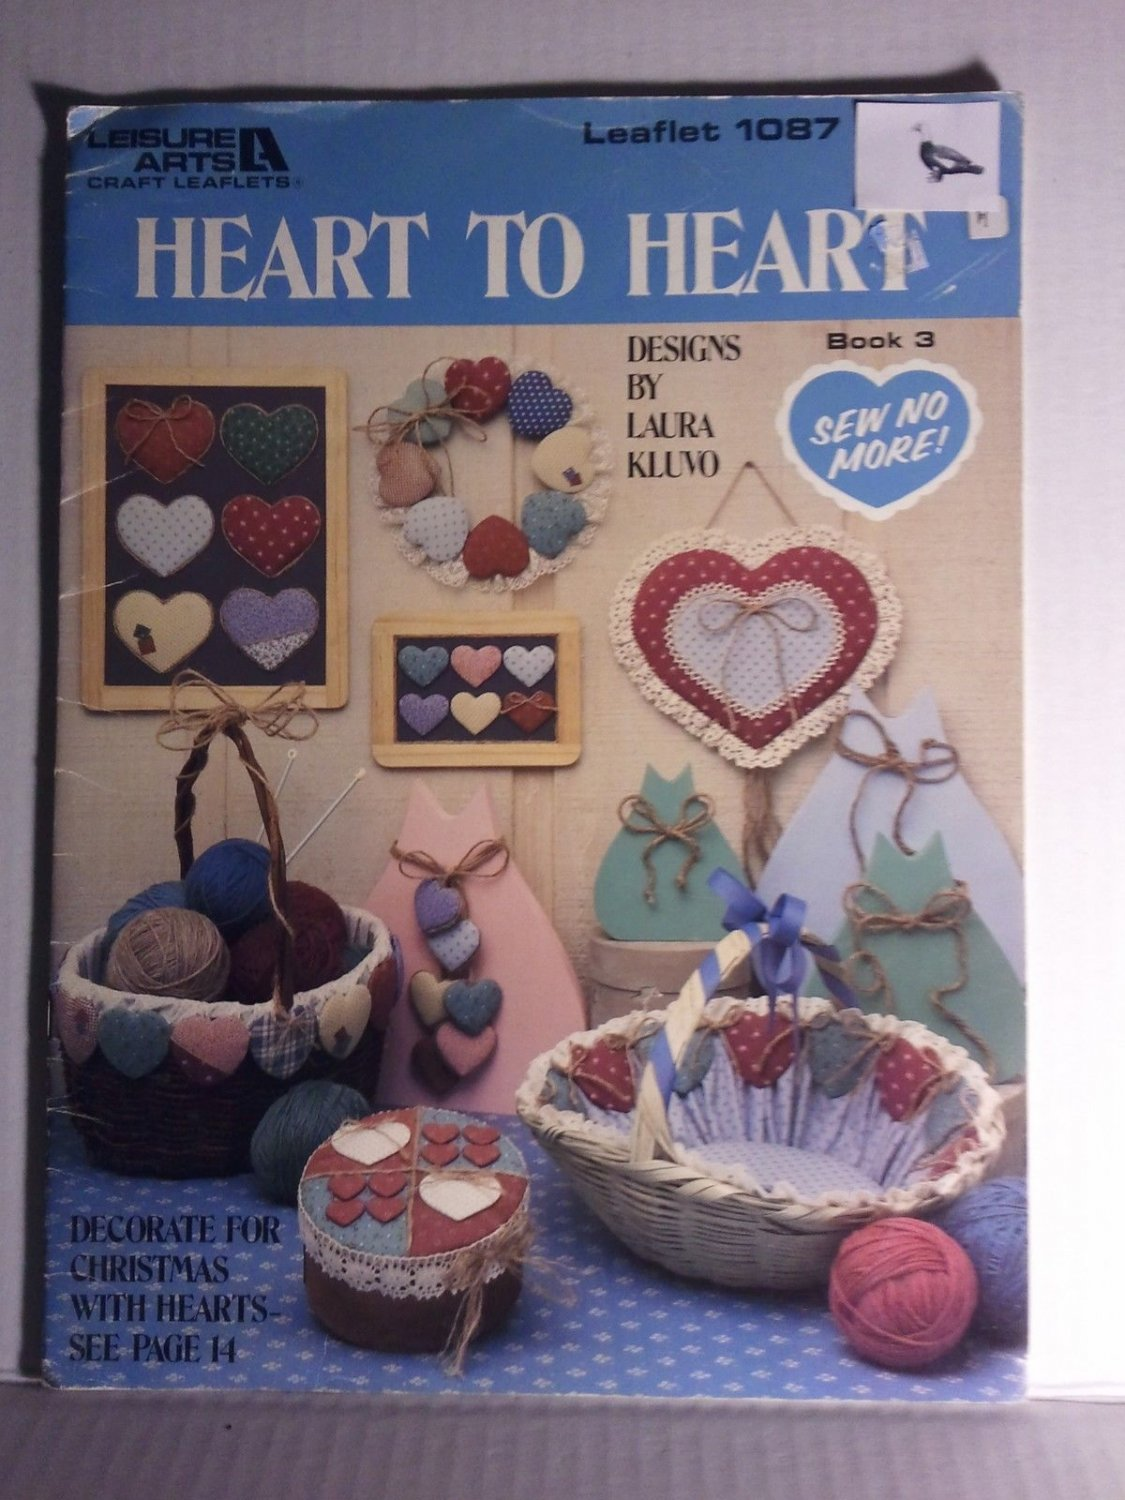 Heart to Heart Leisure Arts 1087 Design Booklet Laura Kluvo No-Sew Pattern